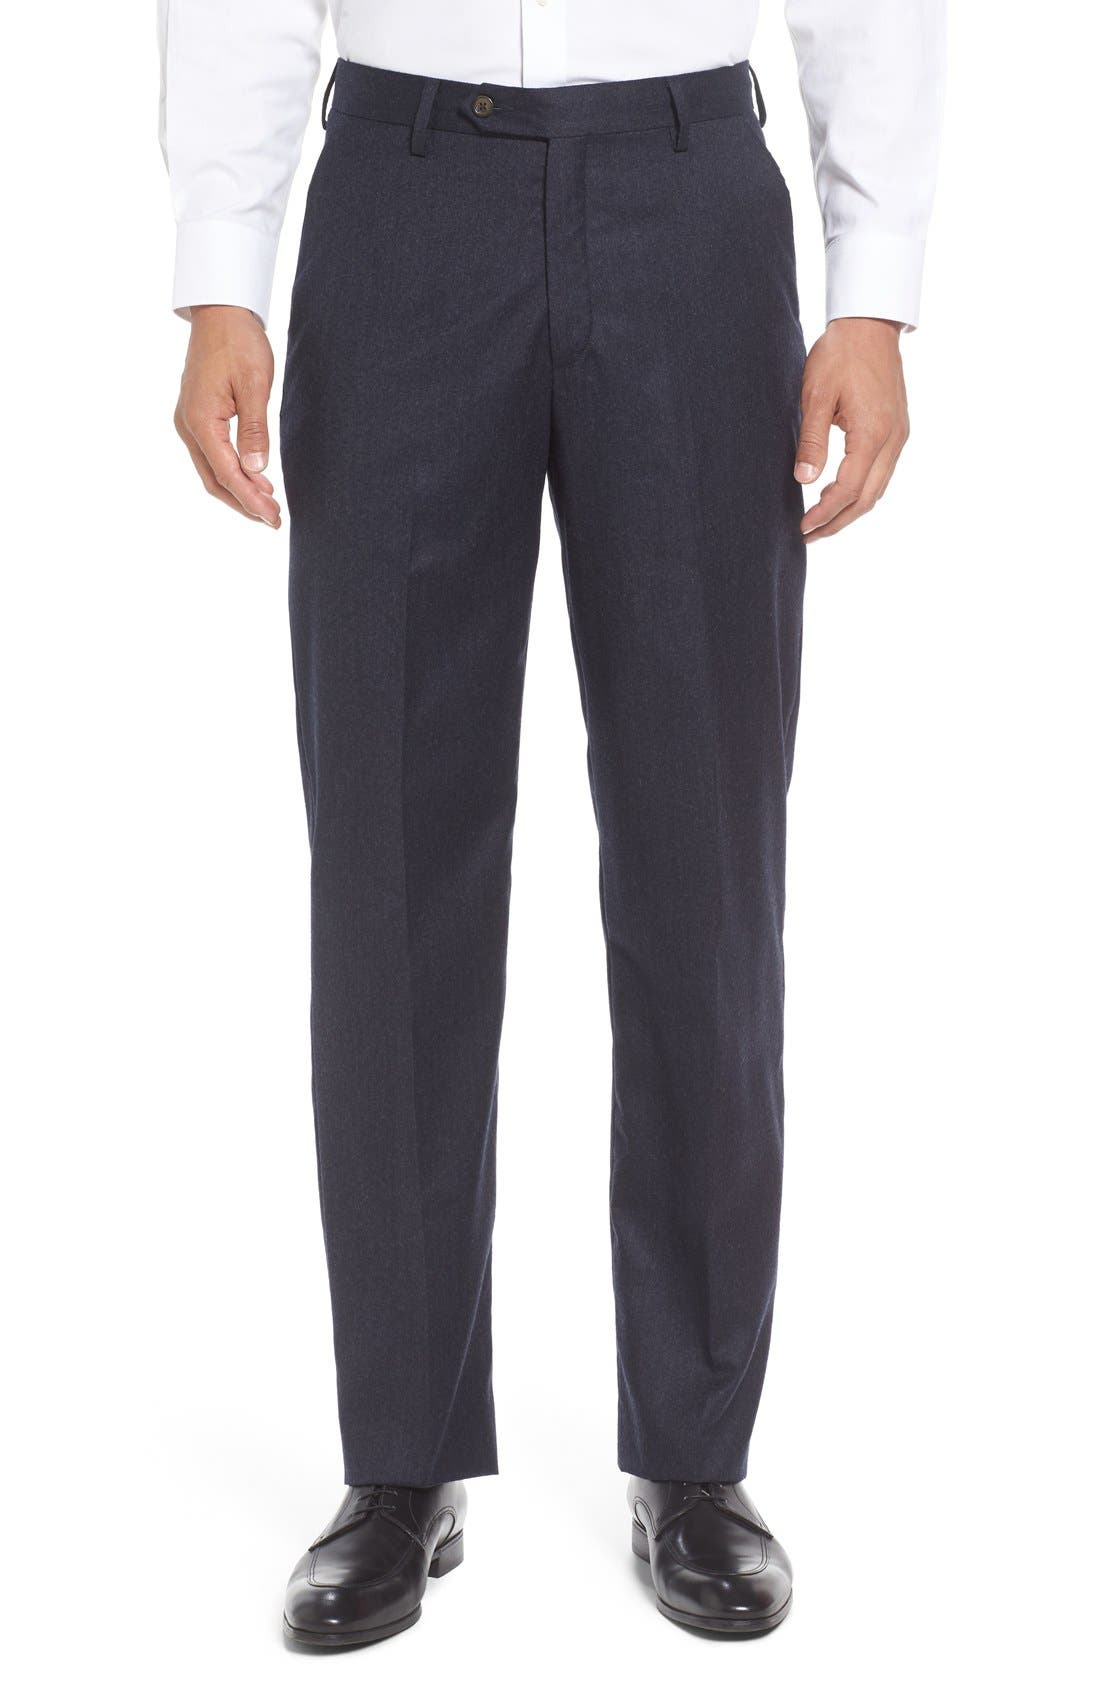 Handsome trousers made from medium-weight wool are cleanly styled with a flat front and sharp center creases. Style Name: Berle Flat Front Classic Fit Solid Wool Dress Pants. Style Number: 5250582. Available in stores.